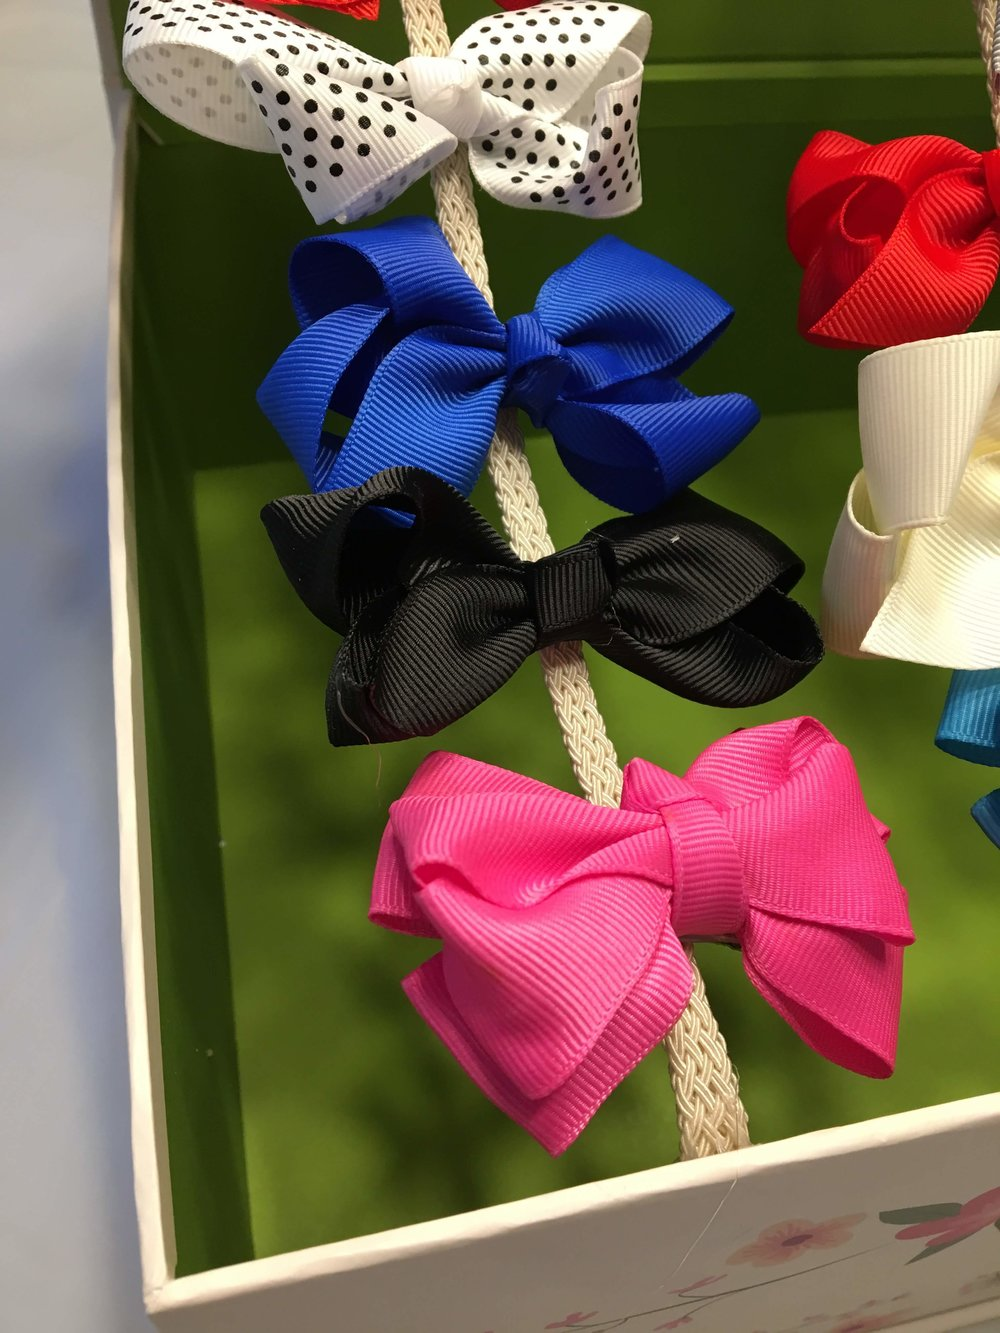 Clip your bows onto each piece and work out how many bows you would like to have on each piece.